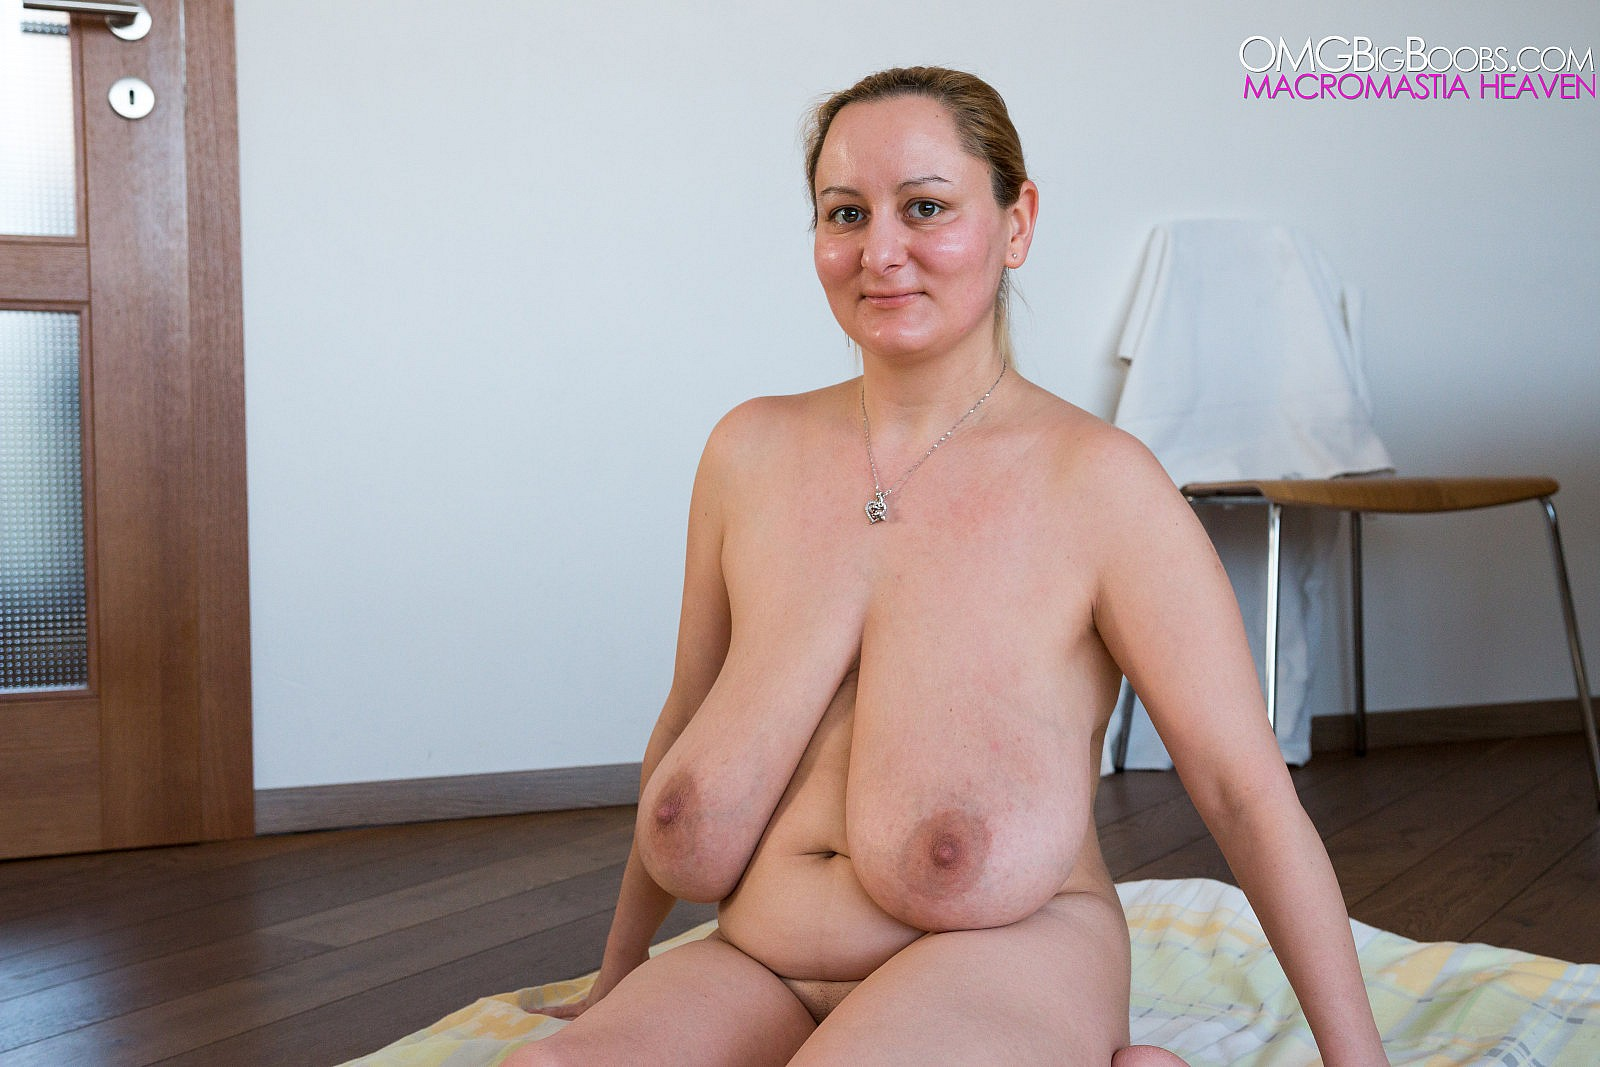 Commit Amateur nude girls saggy boobs join